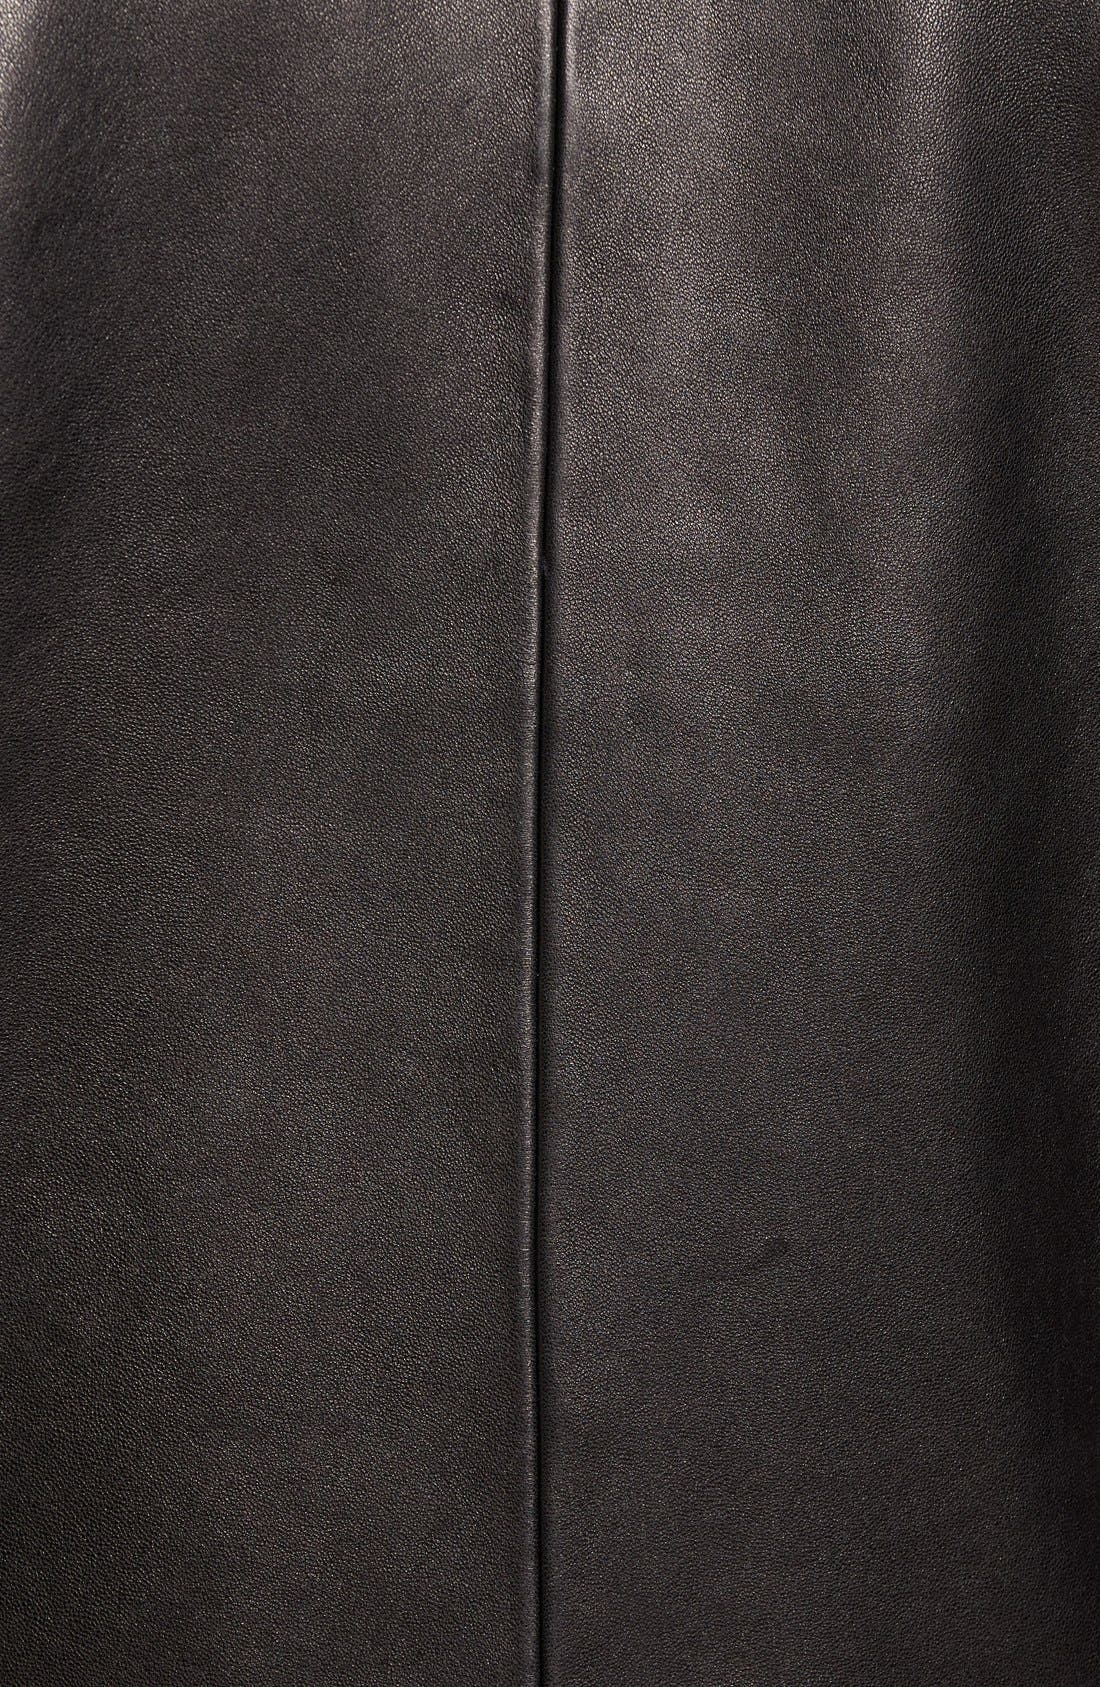 Leather Jacket with Removable Hooded Bib,                             Alternate thumbnail 5, color,                             Black